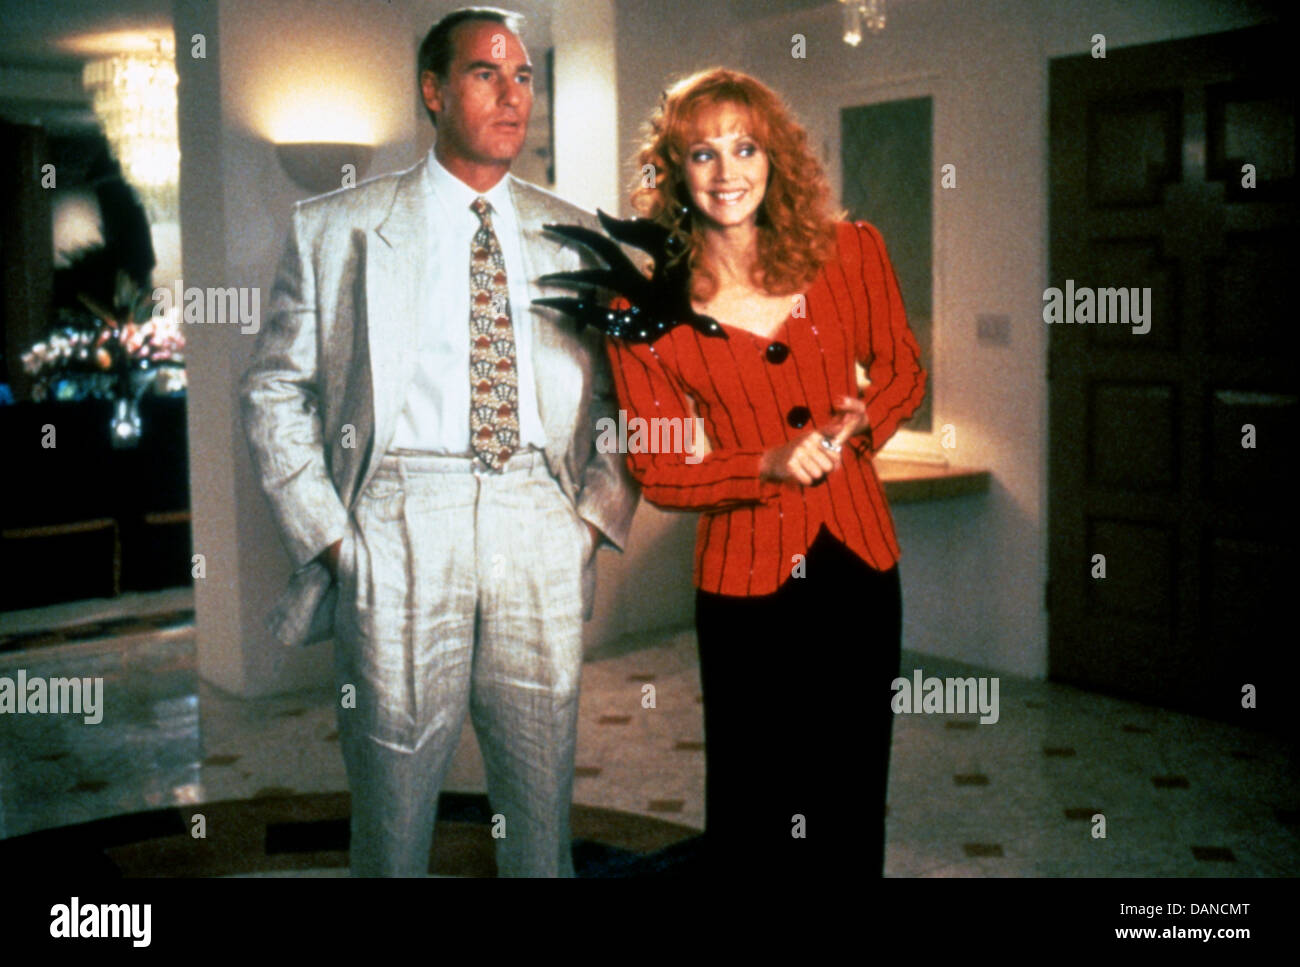 TROOP BEVERLY HILLS (1989) CRAIG T NELSON, SHELLY LONG, TBH 006 MOVIESTORE COLLECTION LTD - Stock Image